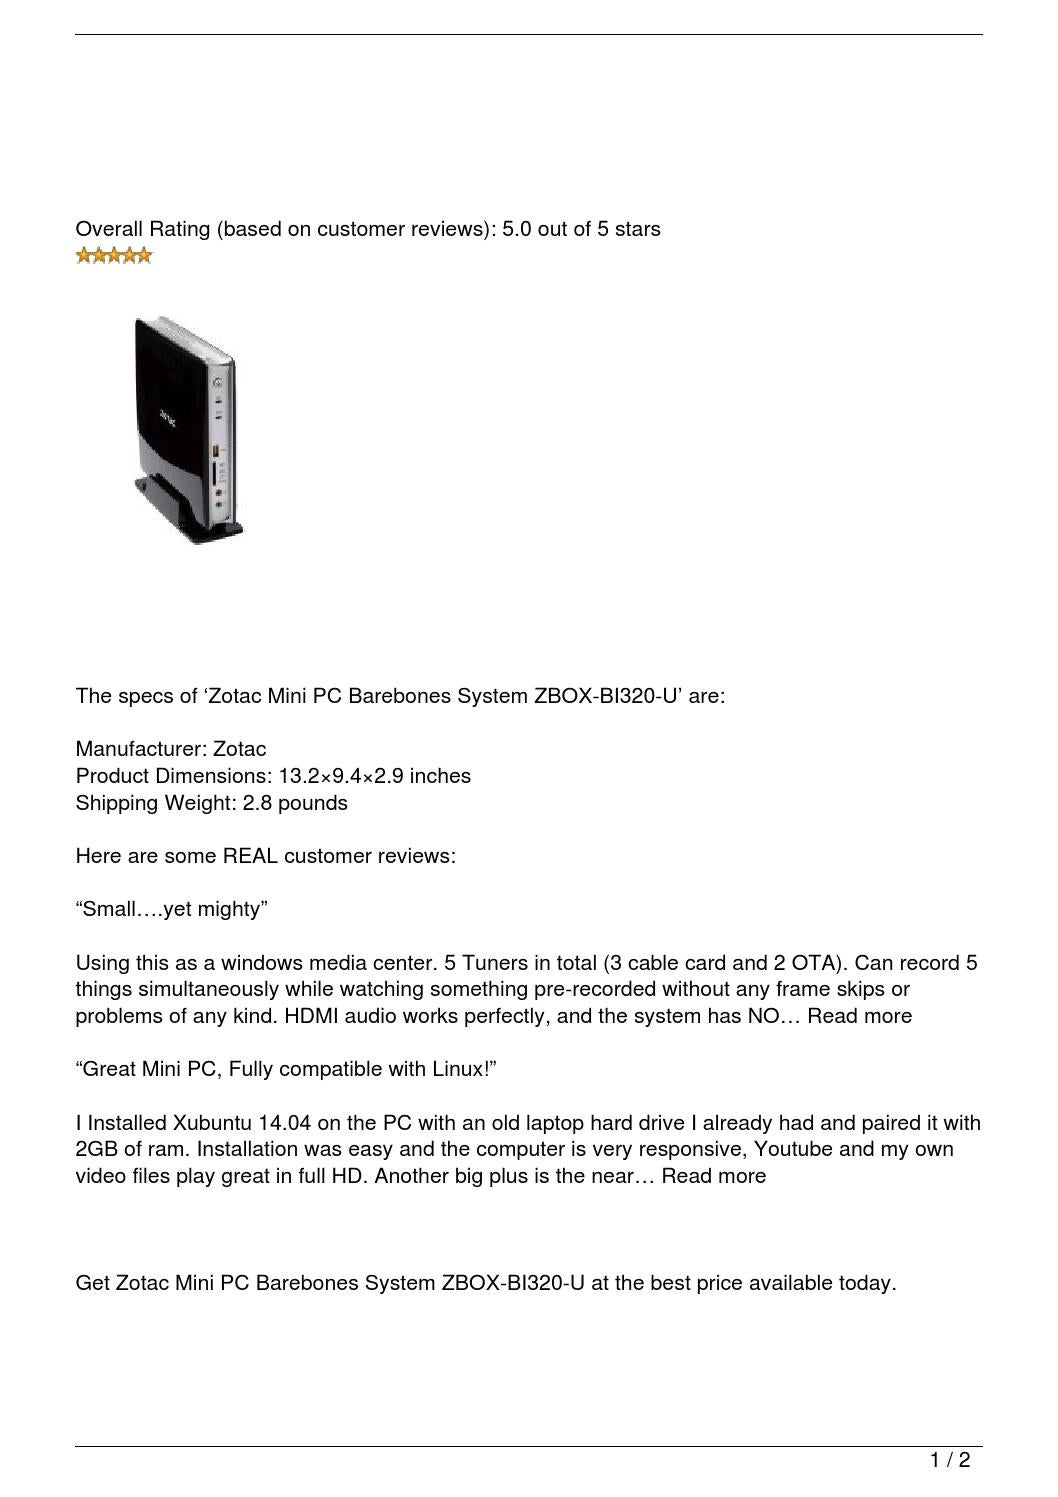 Zotac Mini PC Barebones System ZBOX-BI320-U Review by